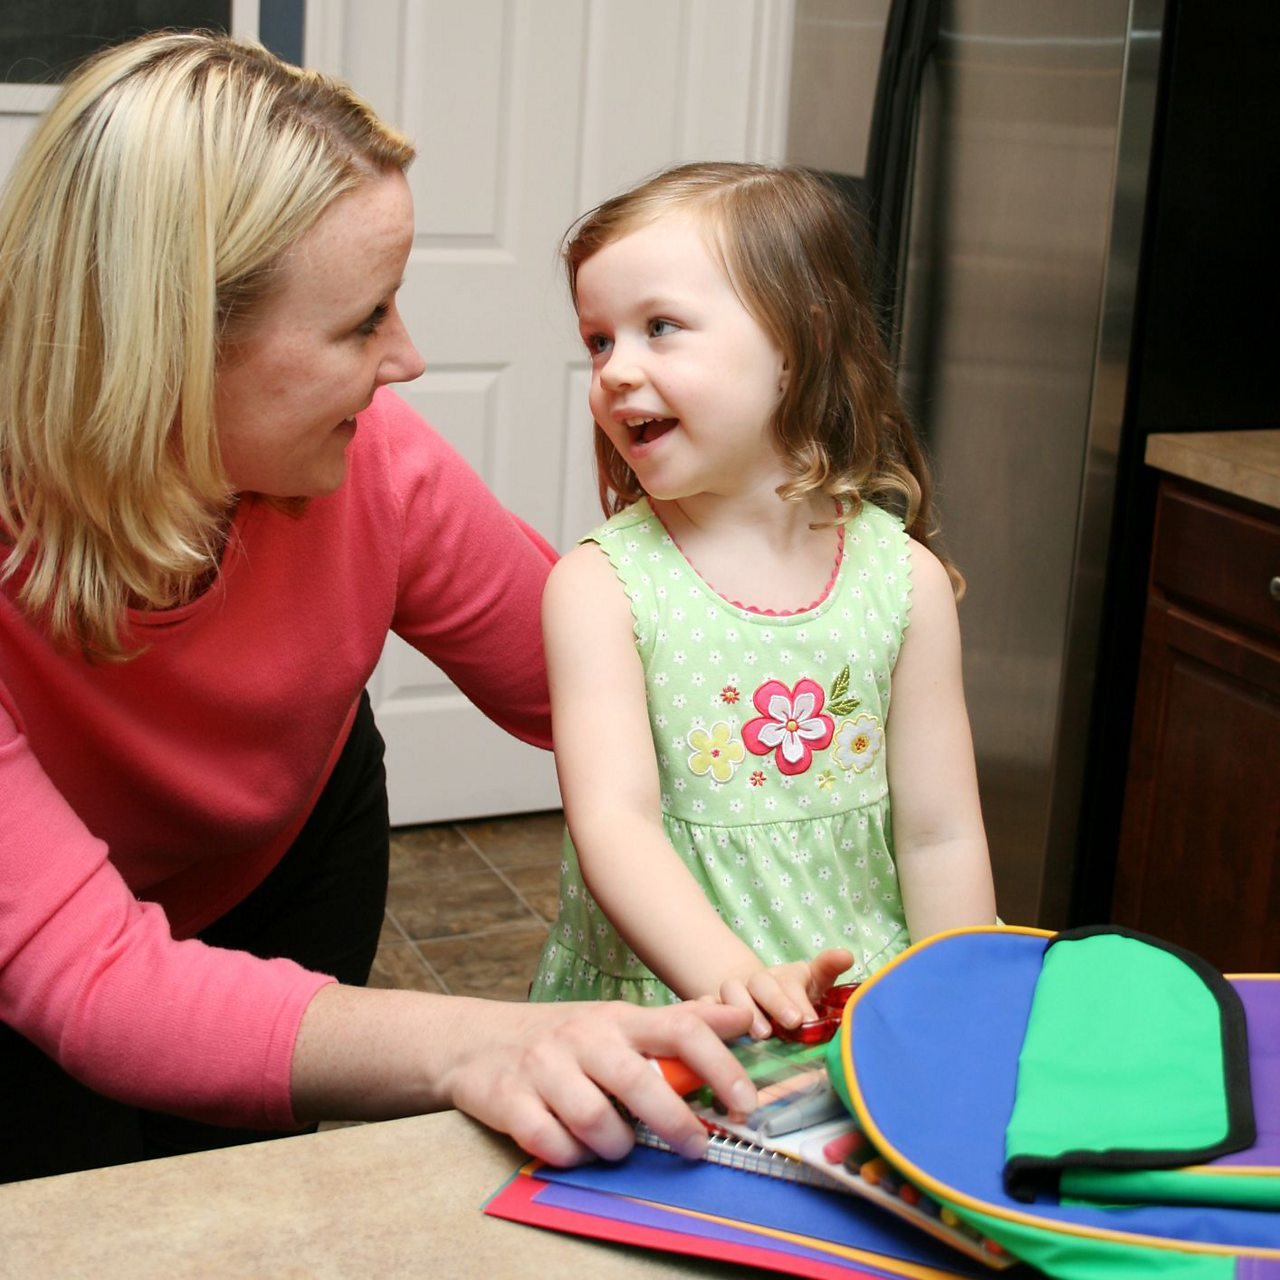 Mum packing schoolbag with daughter